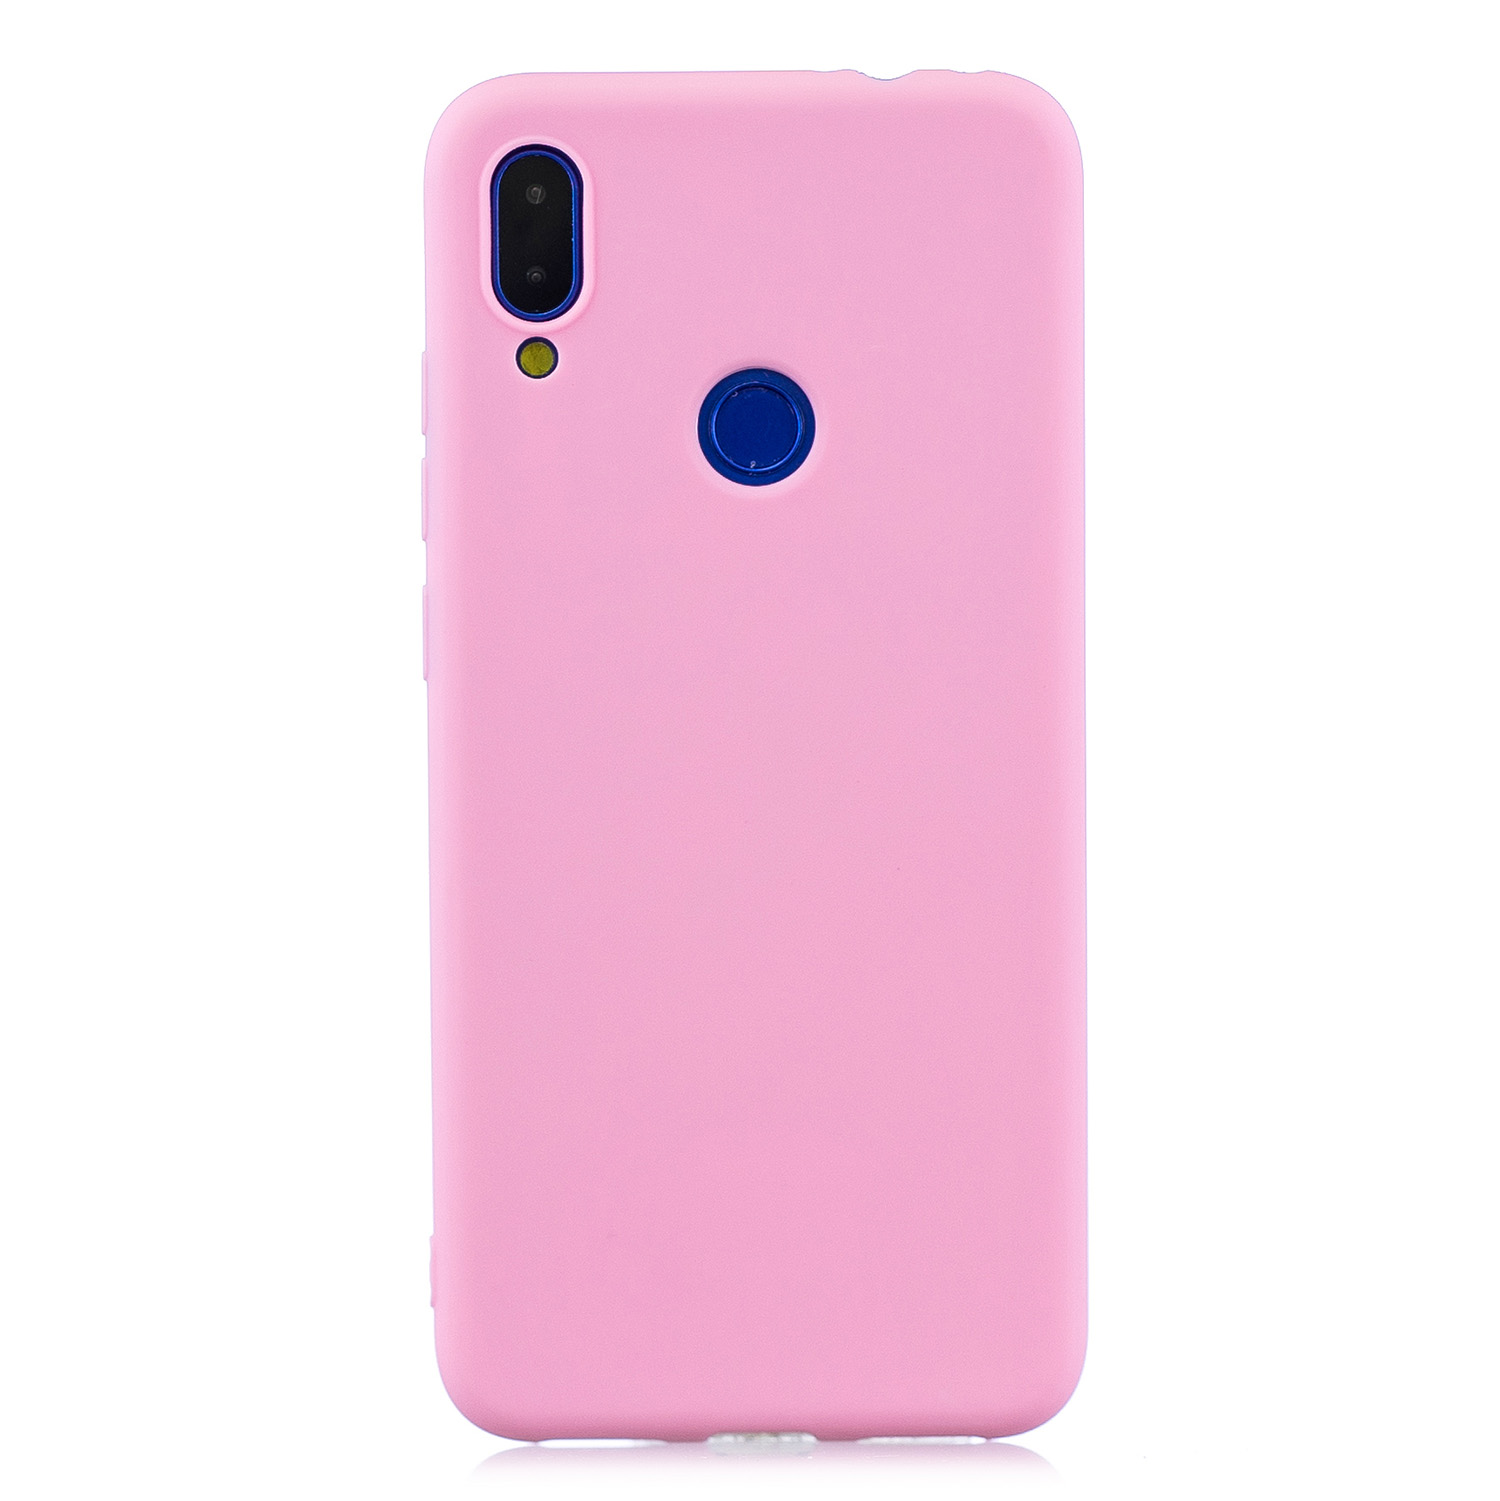 For Redmi 7 Lovely Candy Color Matte TPU Anti-scratch Non-slip Protective Cover Back Case dark pink